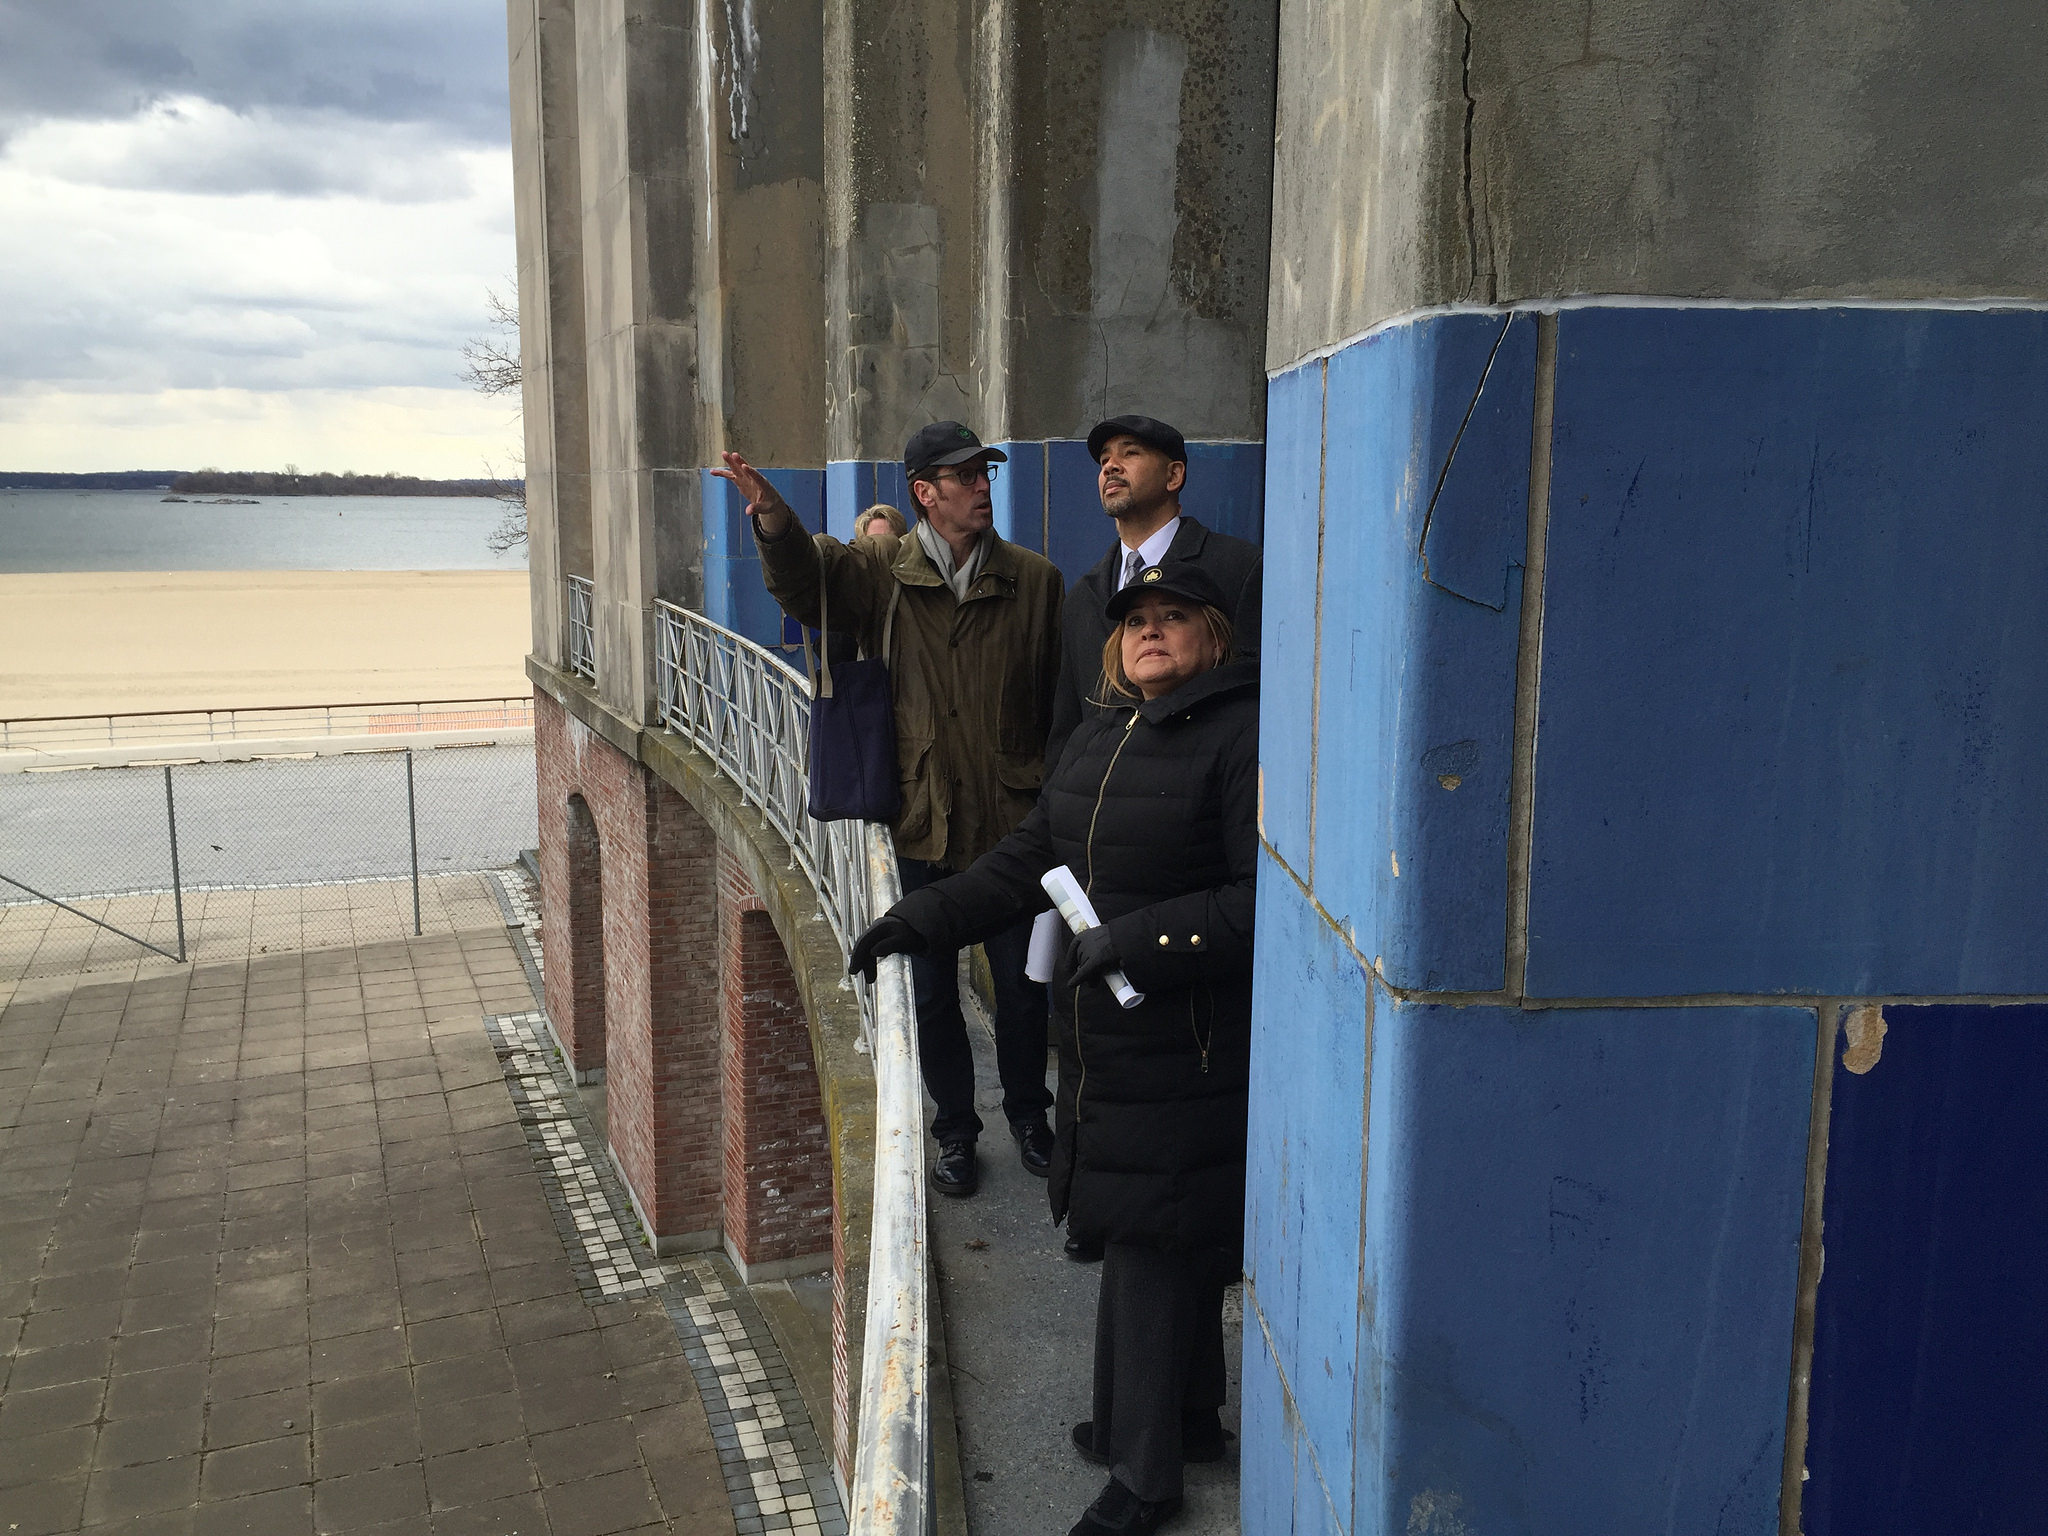 Diaz Tours Historic Orchard Beach Promenade